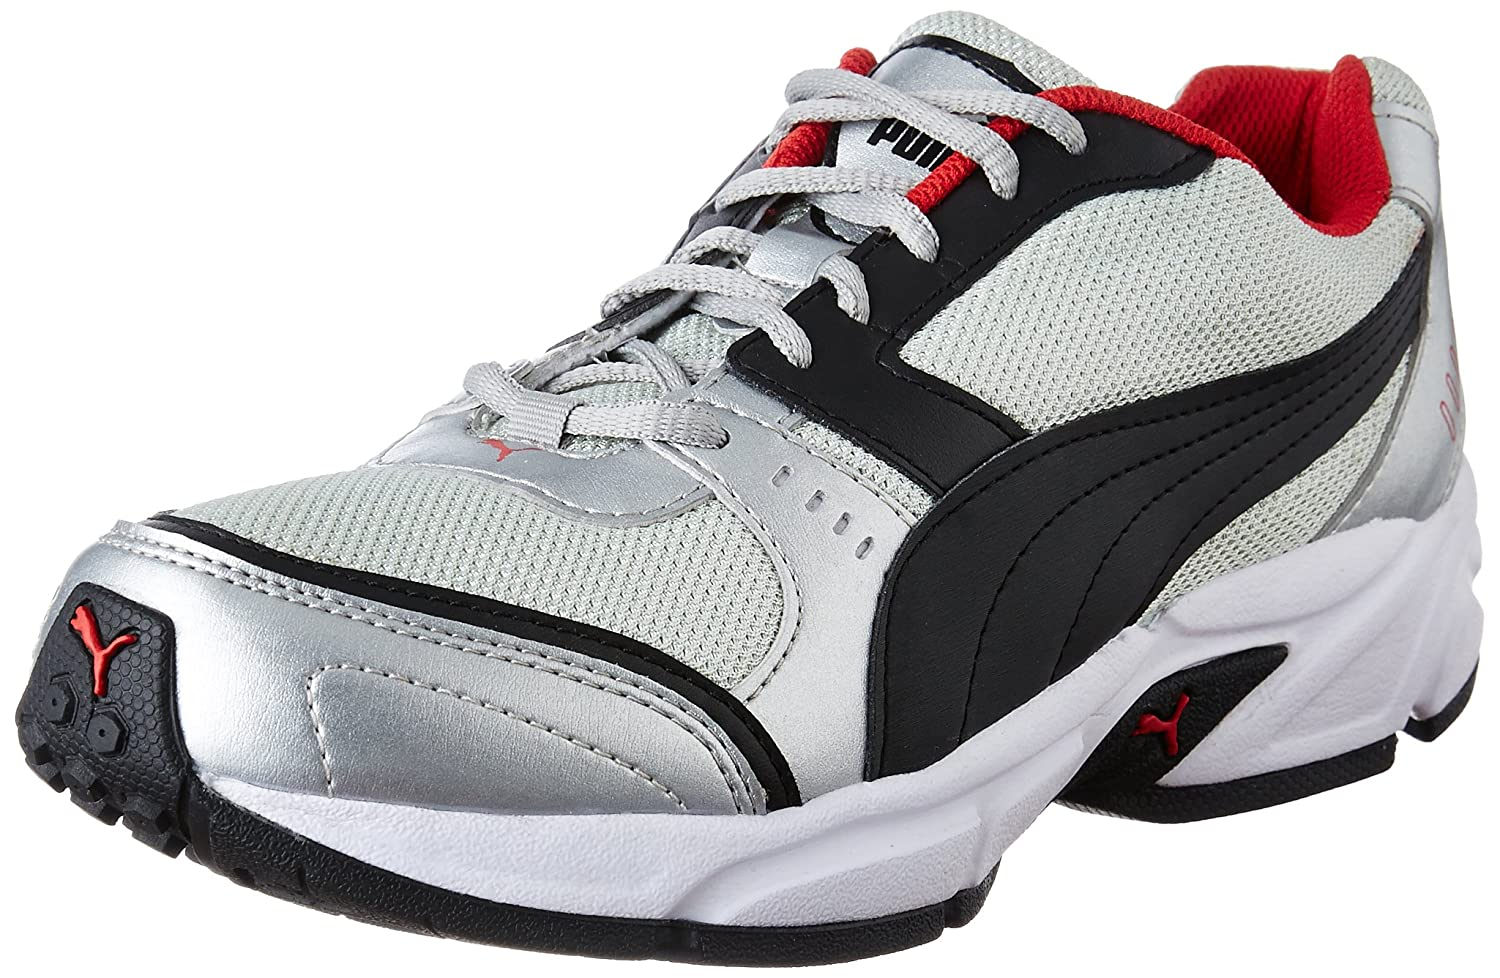 Deals on Puma Men's Argus DP Running Shoes